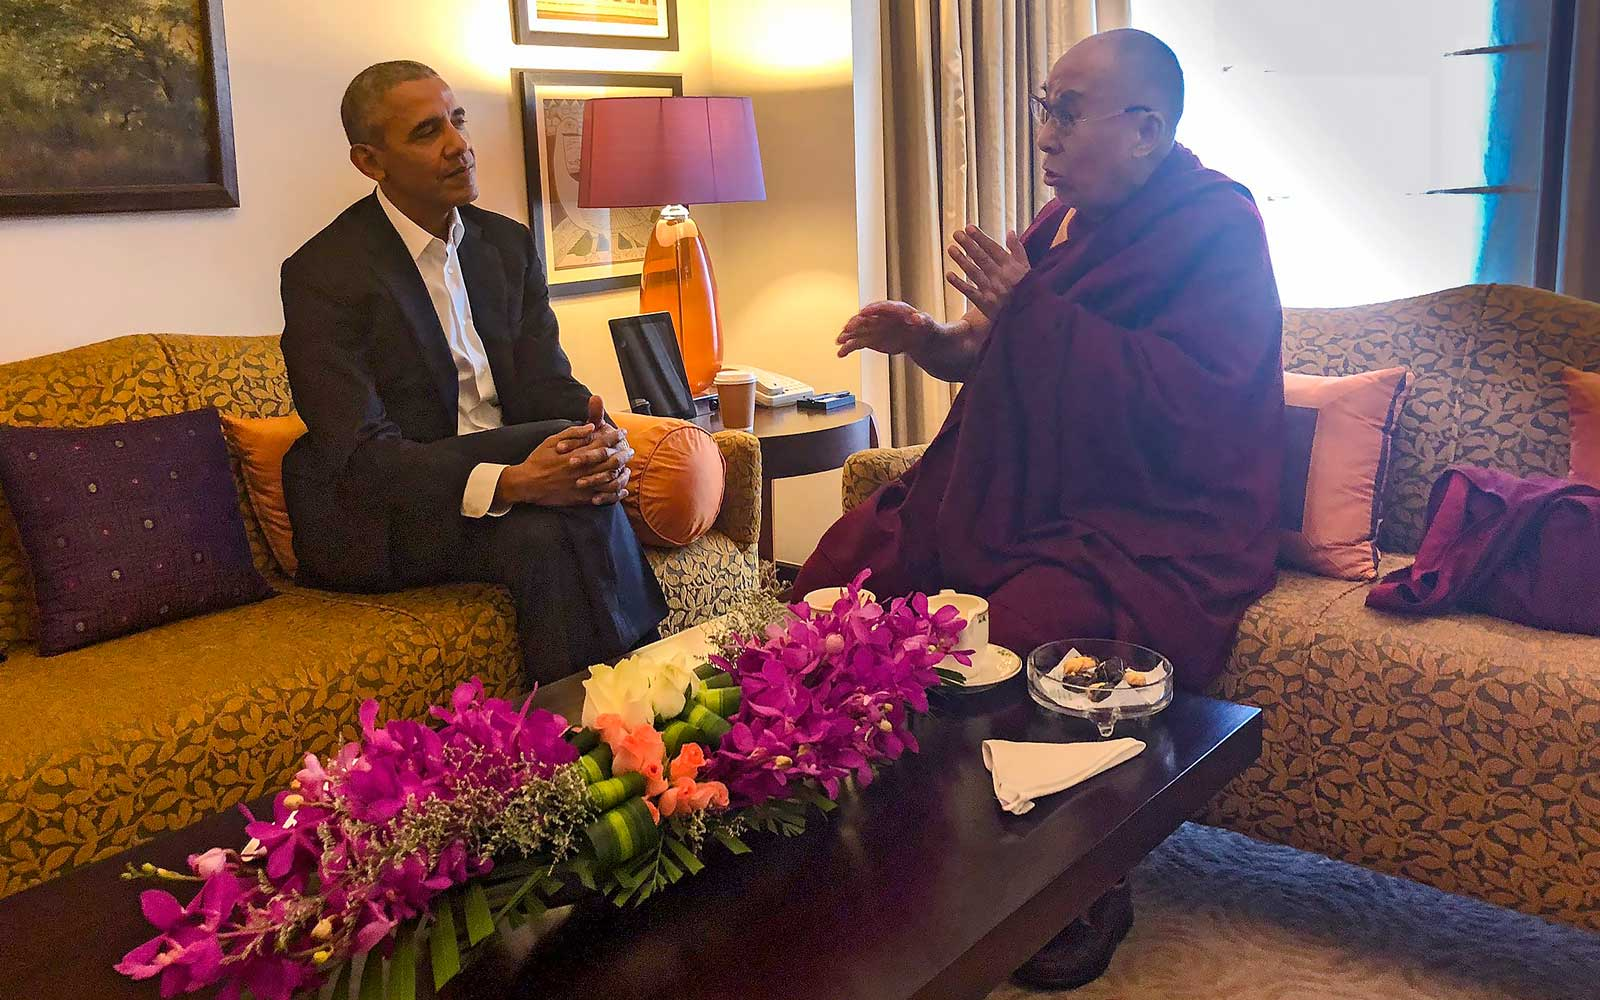 Obama Hung Out With 'Old Friend' the Dalai Lama in India